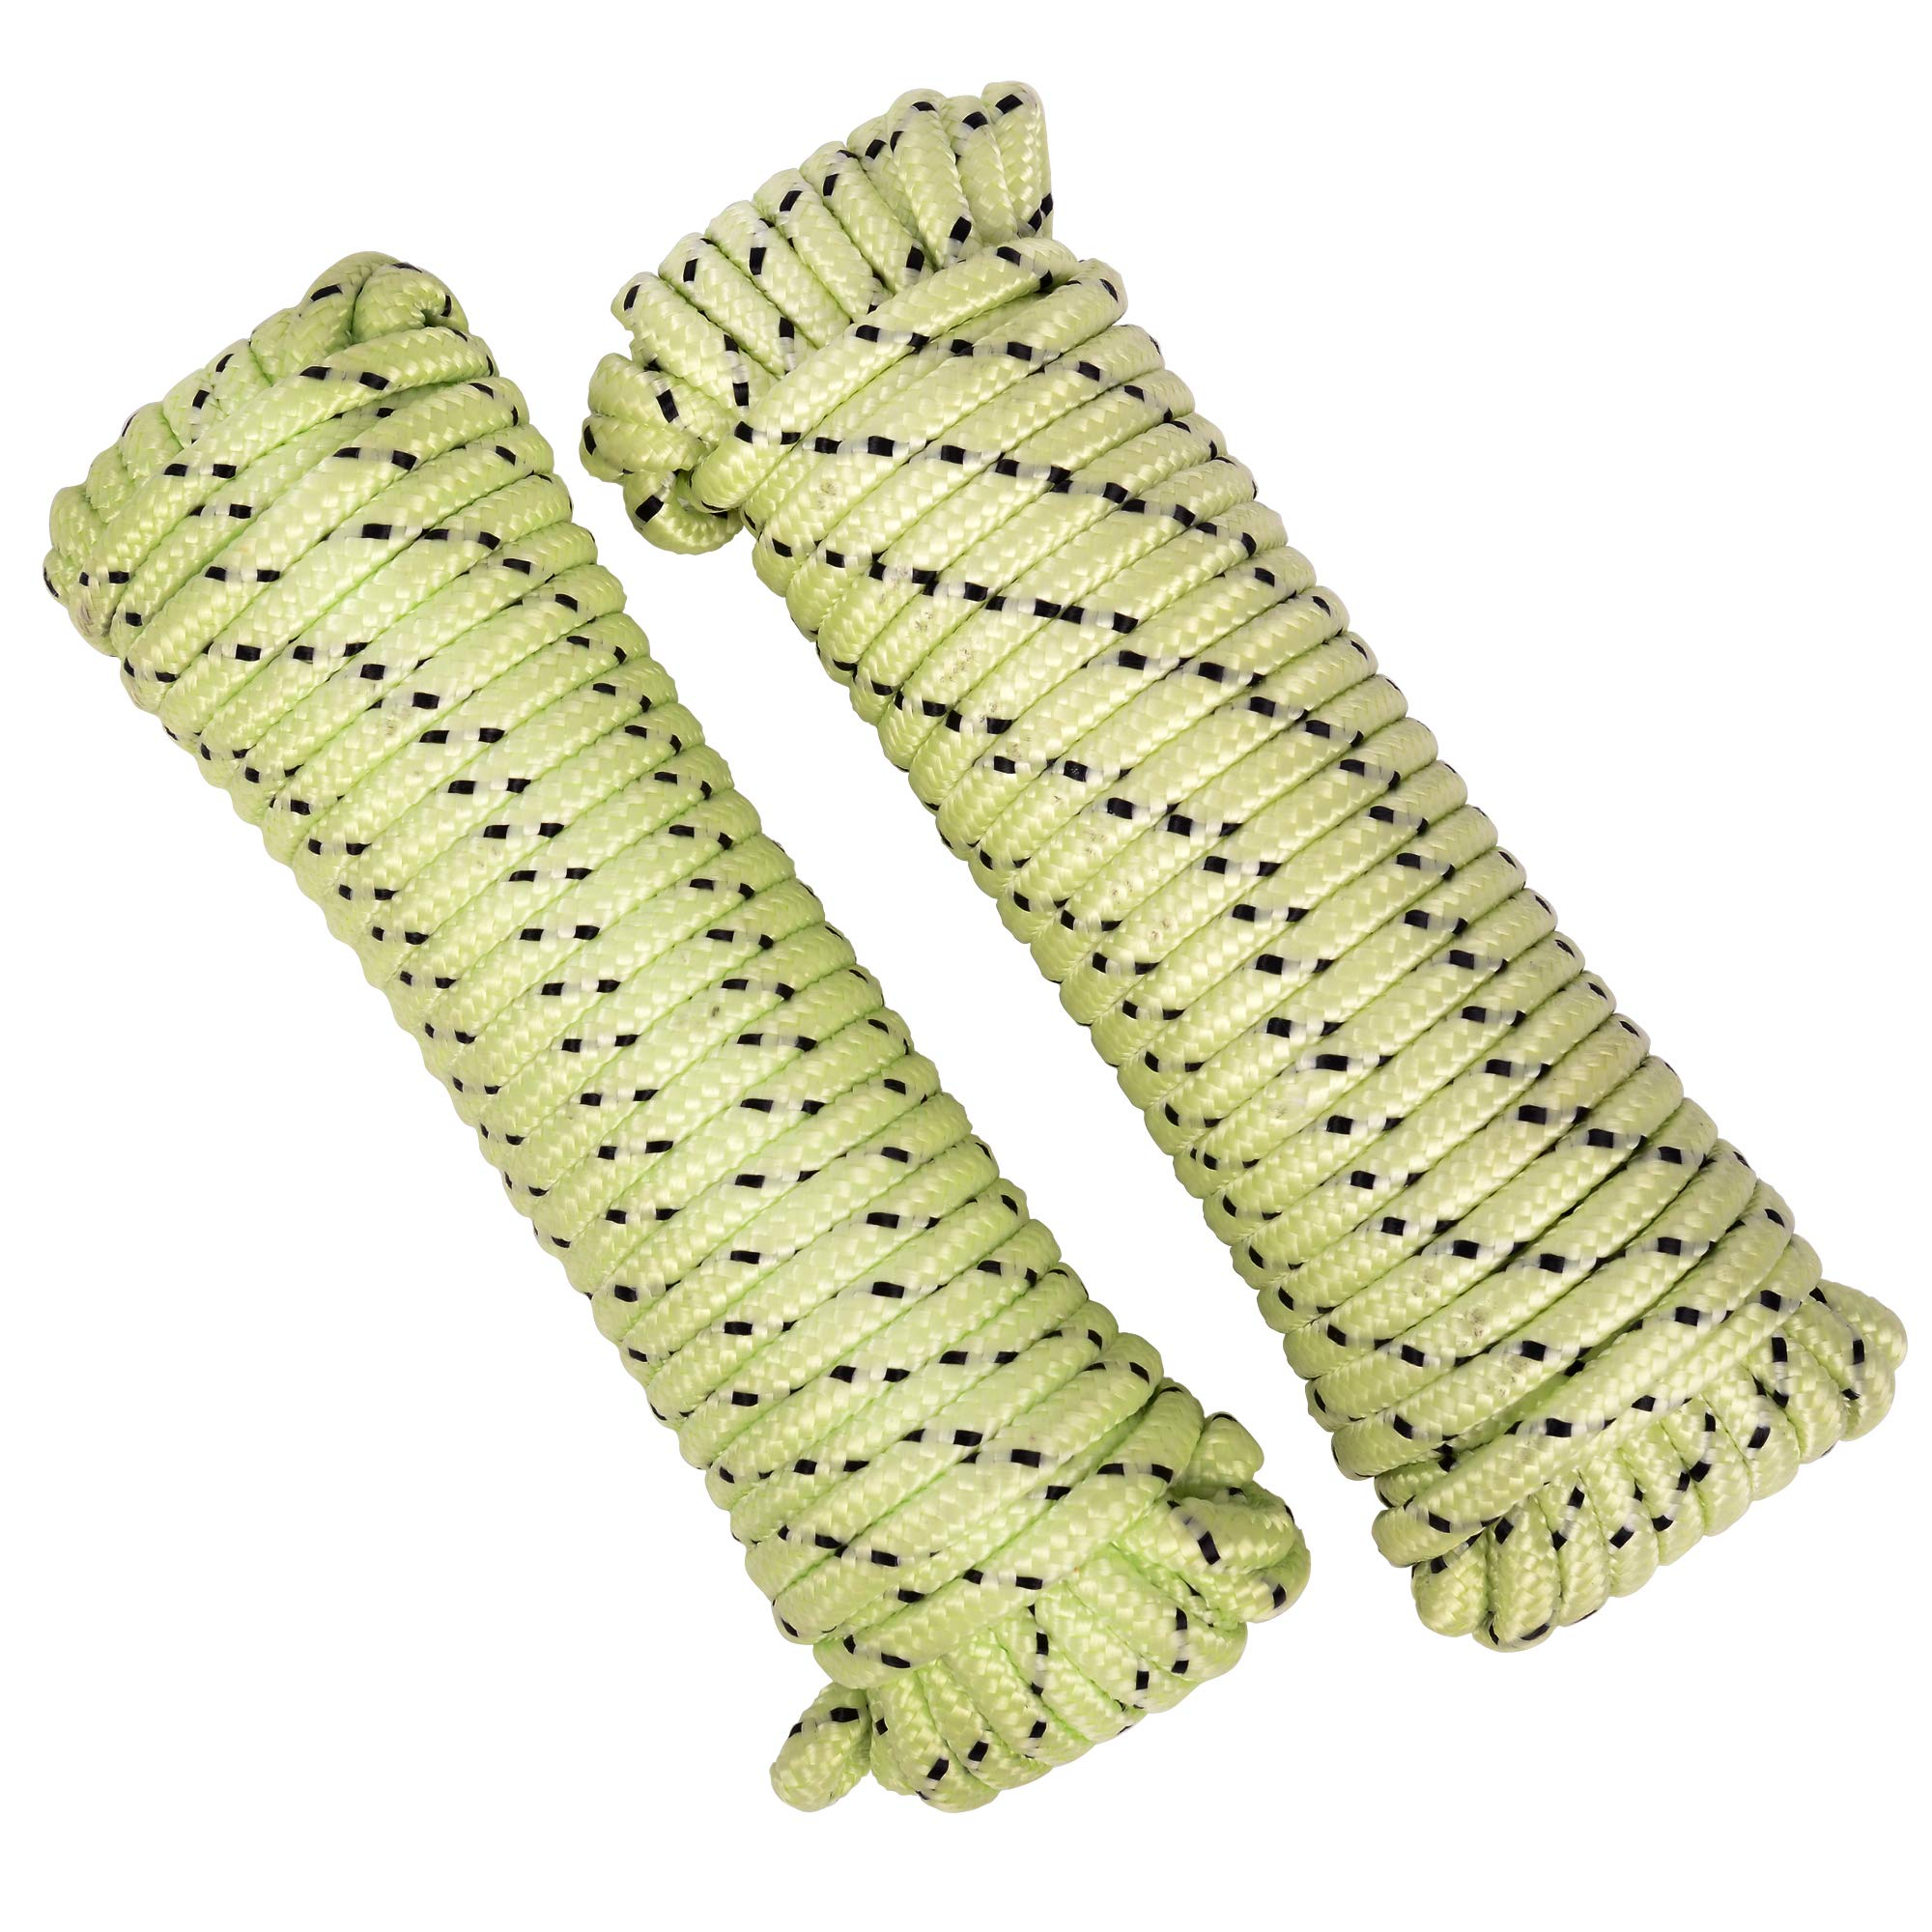 MICASA Utility Rope Paracord Nylon Twine - Diamond 16 Strands Braided, 100% New Polypropylene Material, and 1/4inch by 50ft, Twin Pack, Camping Tools for Tent (Fluorescene)